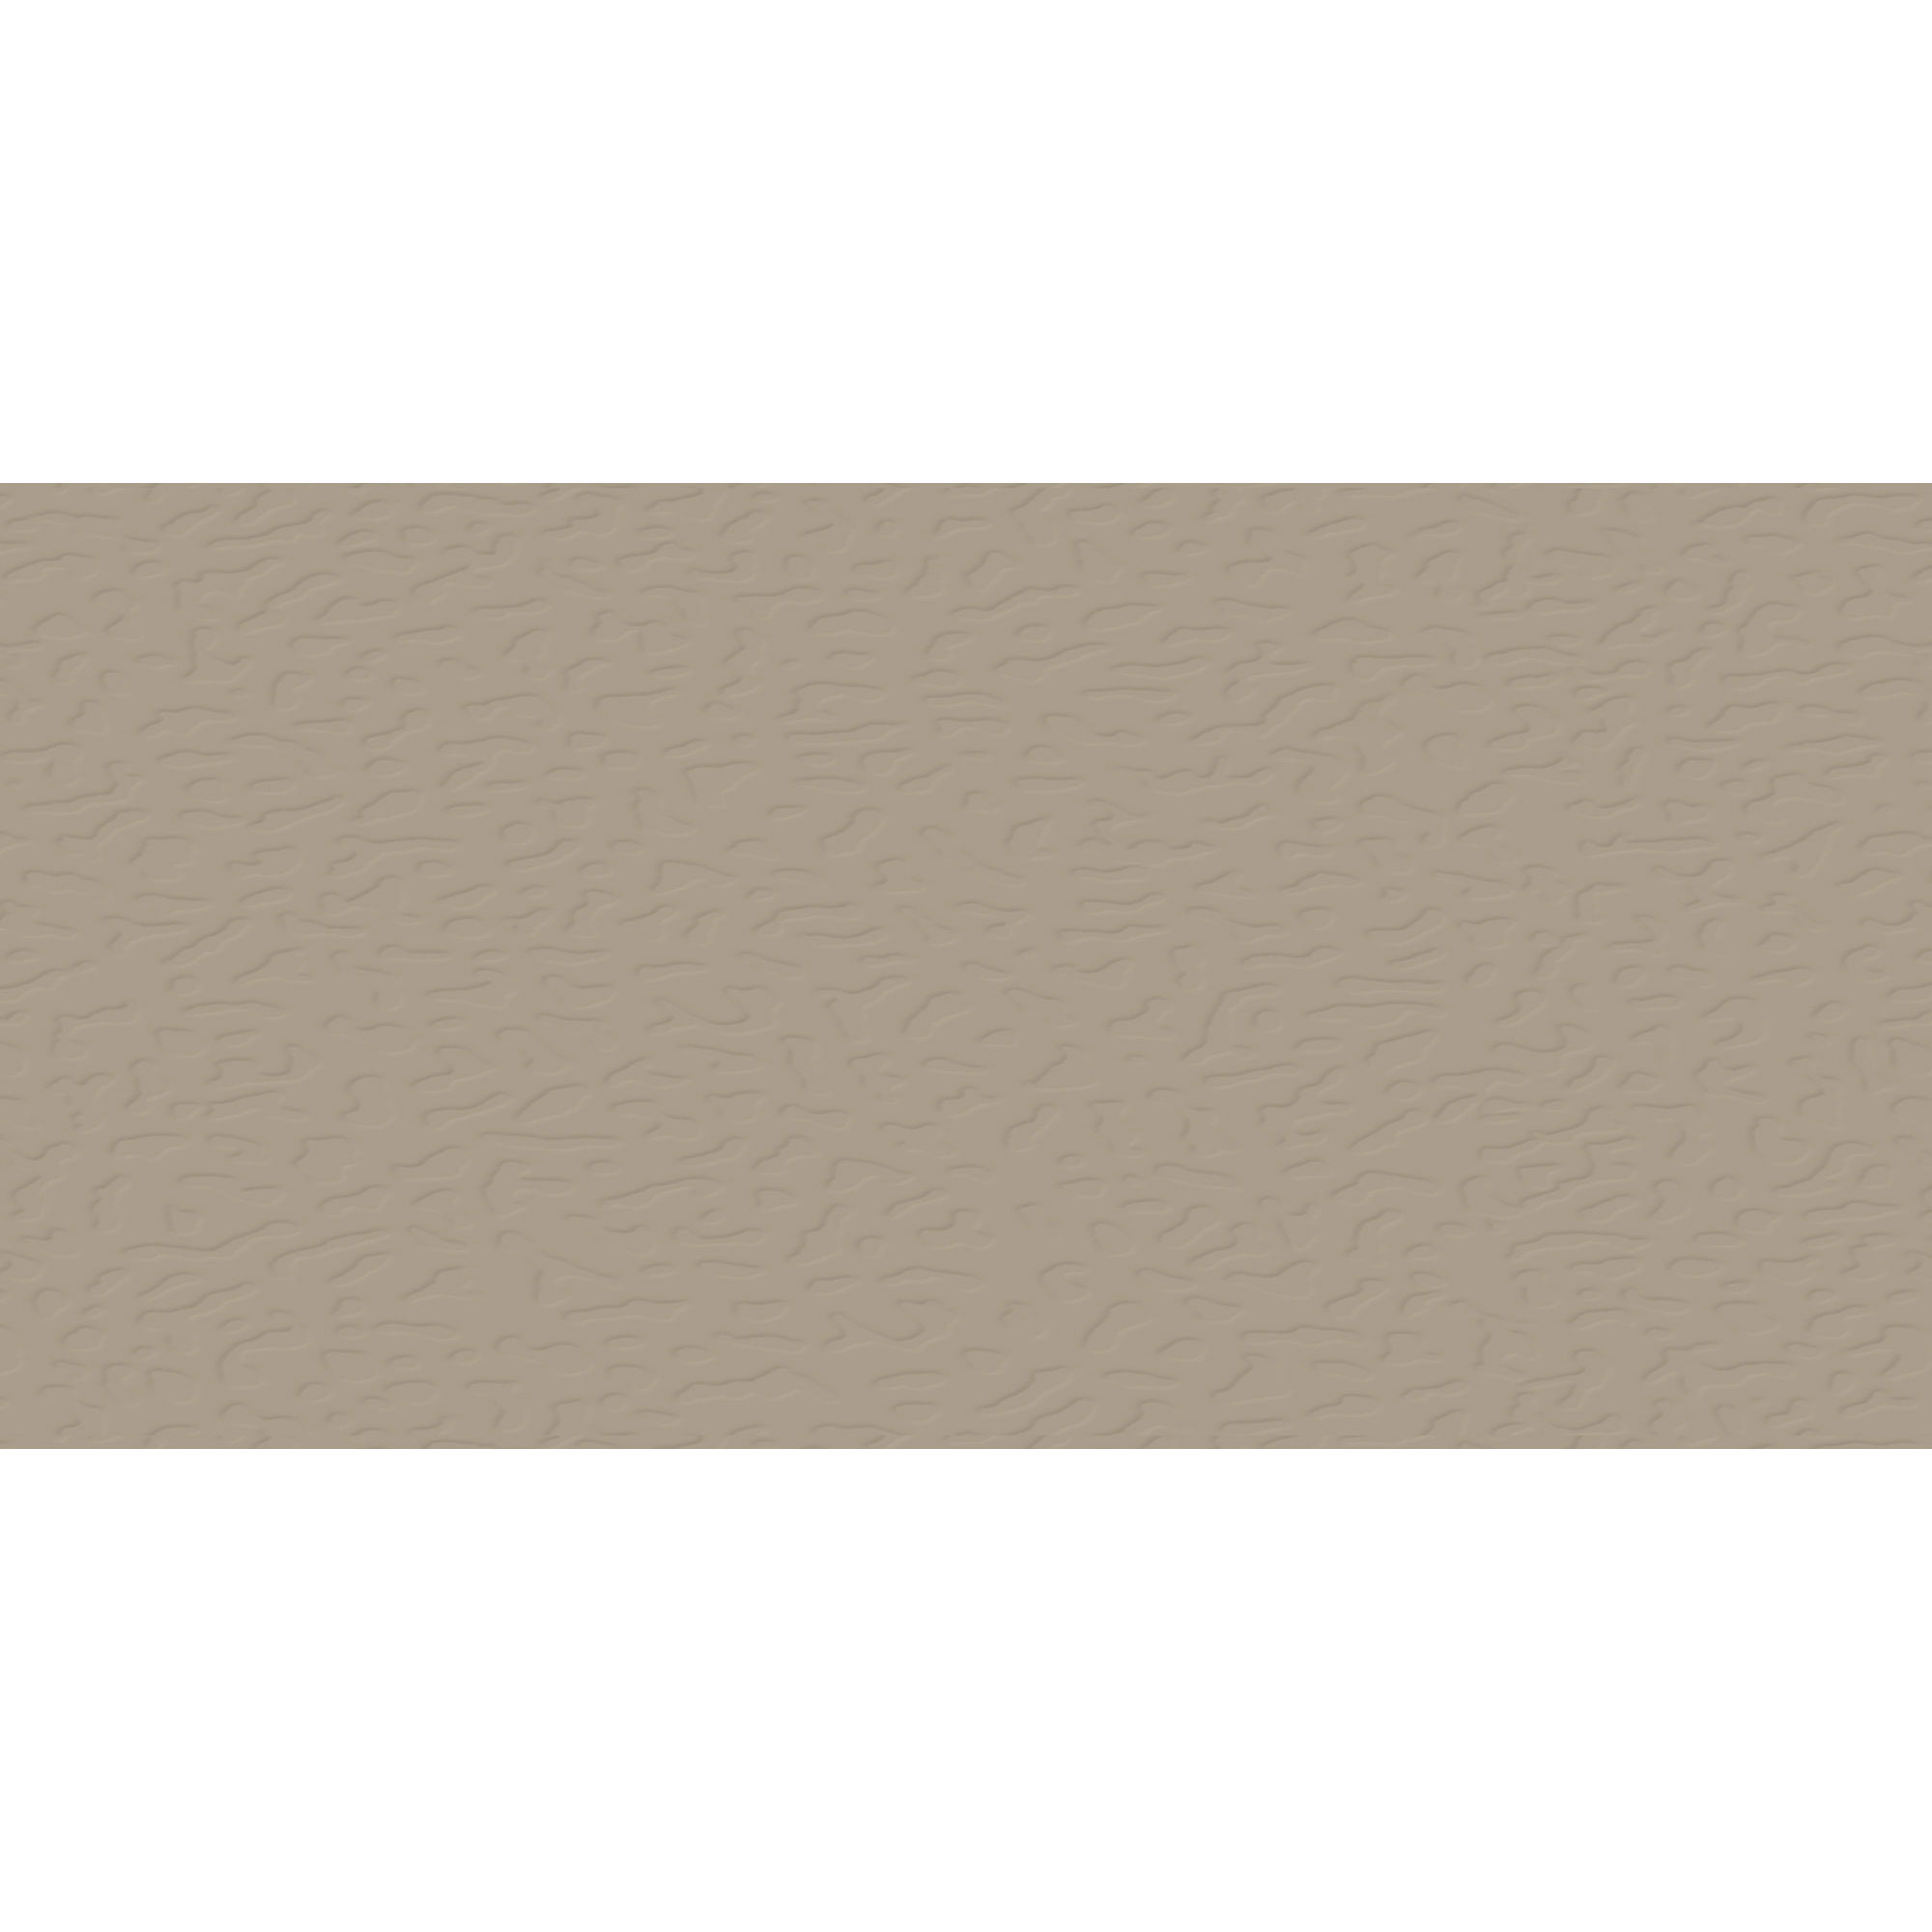 Roppe Designers Choice Hammered 6 x 12 Flax